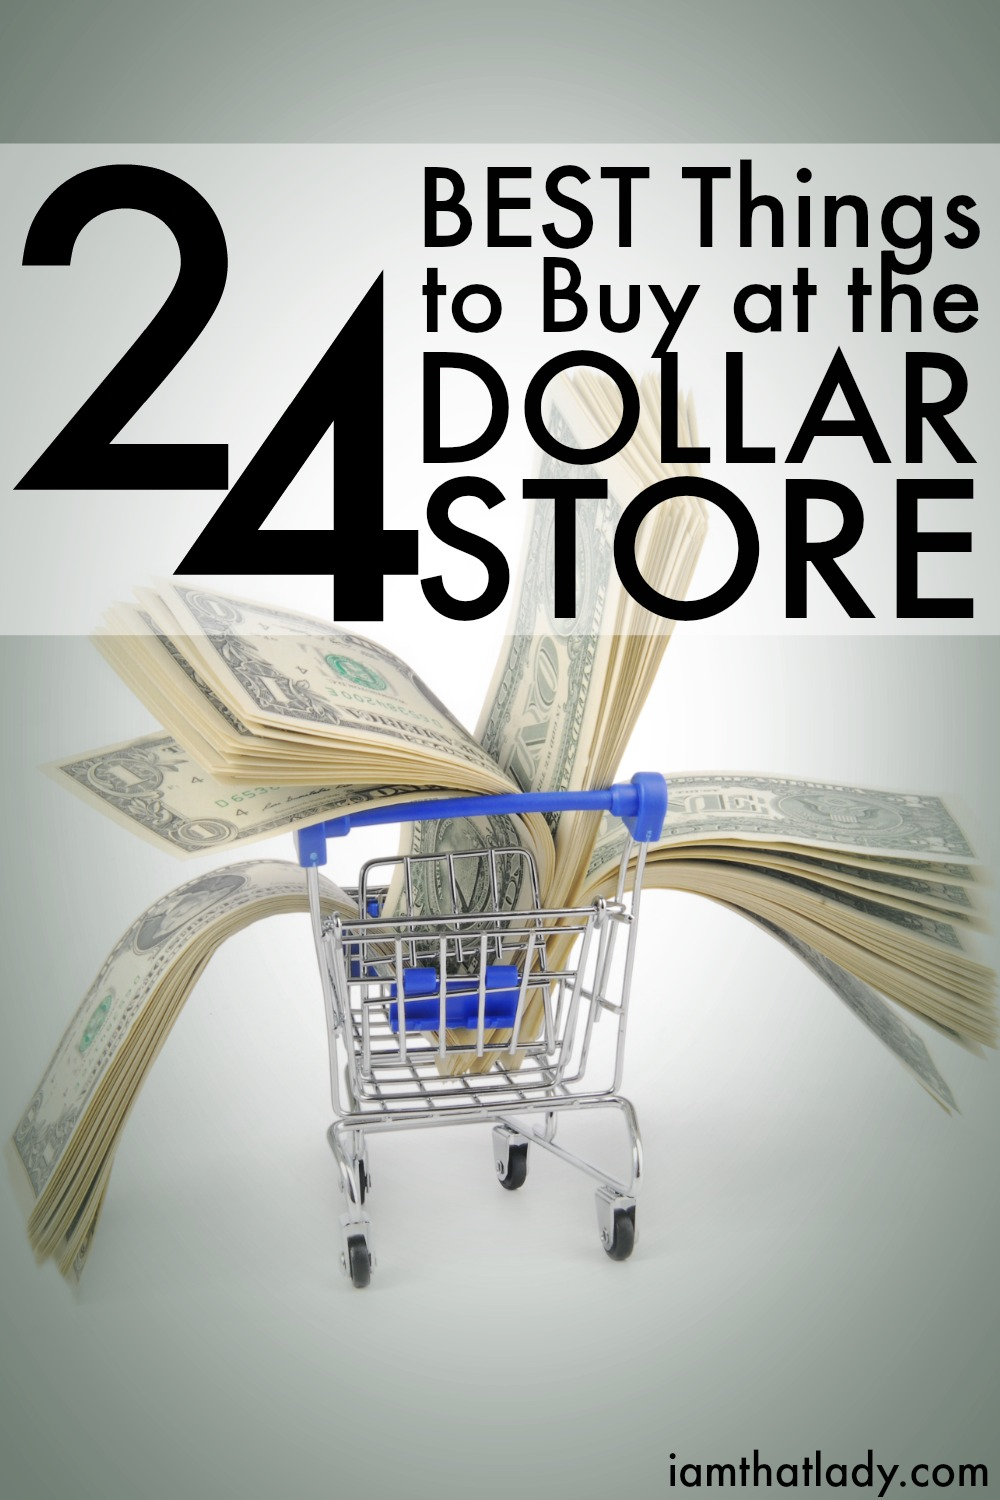 Not everything at the dollar store is a great deal, but many things are. Check out this list of 24 AWESOME buys at the dollar store!